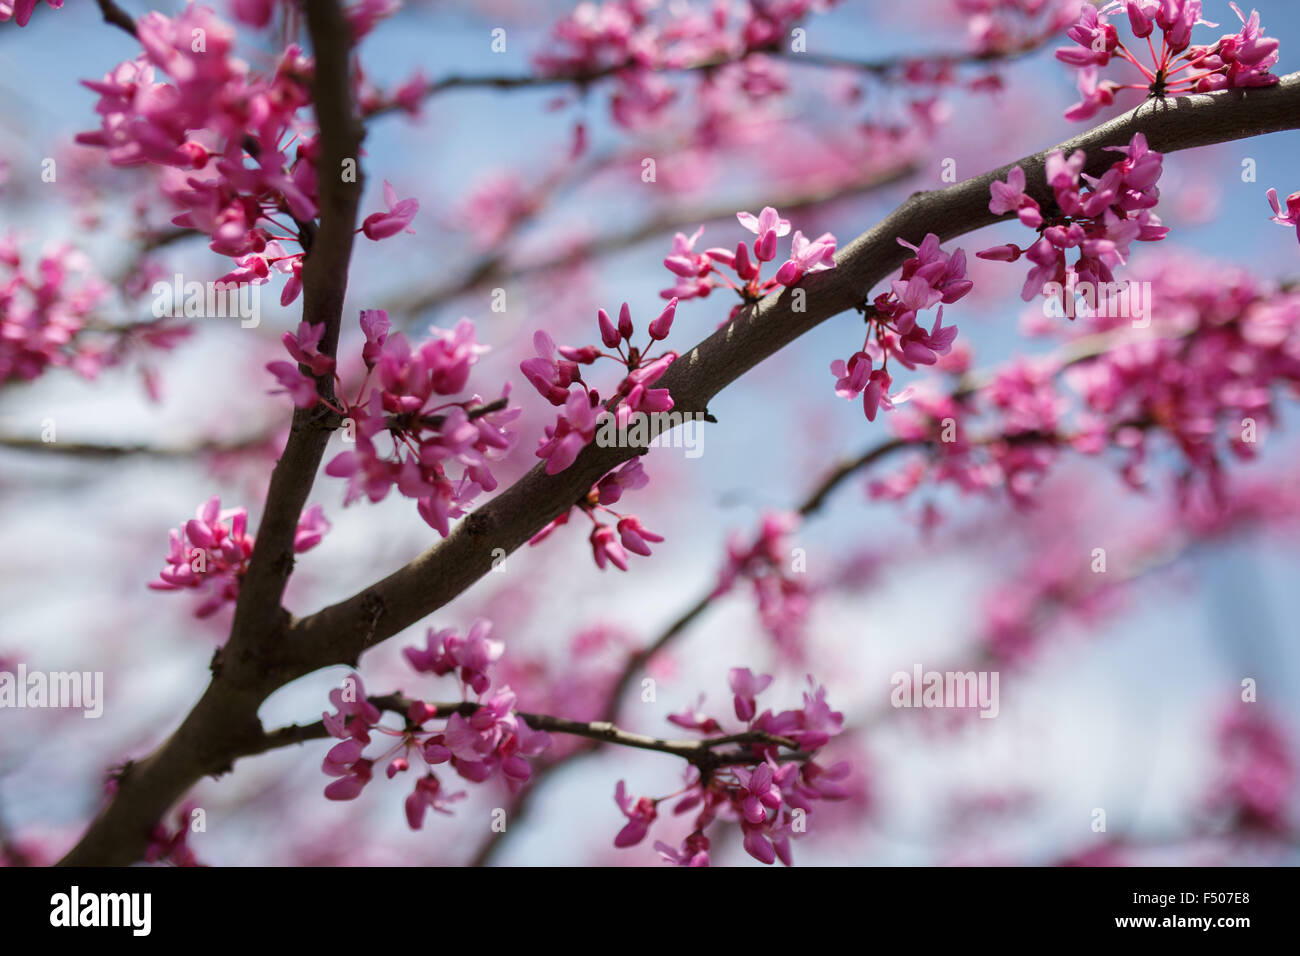 Eastern Redbud tree (Cercis canadensis) in full bloom in the spring - Stock Image